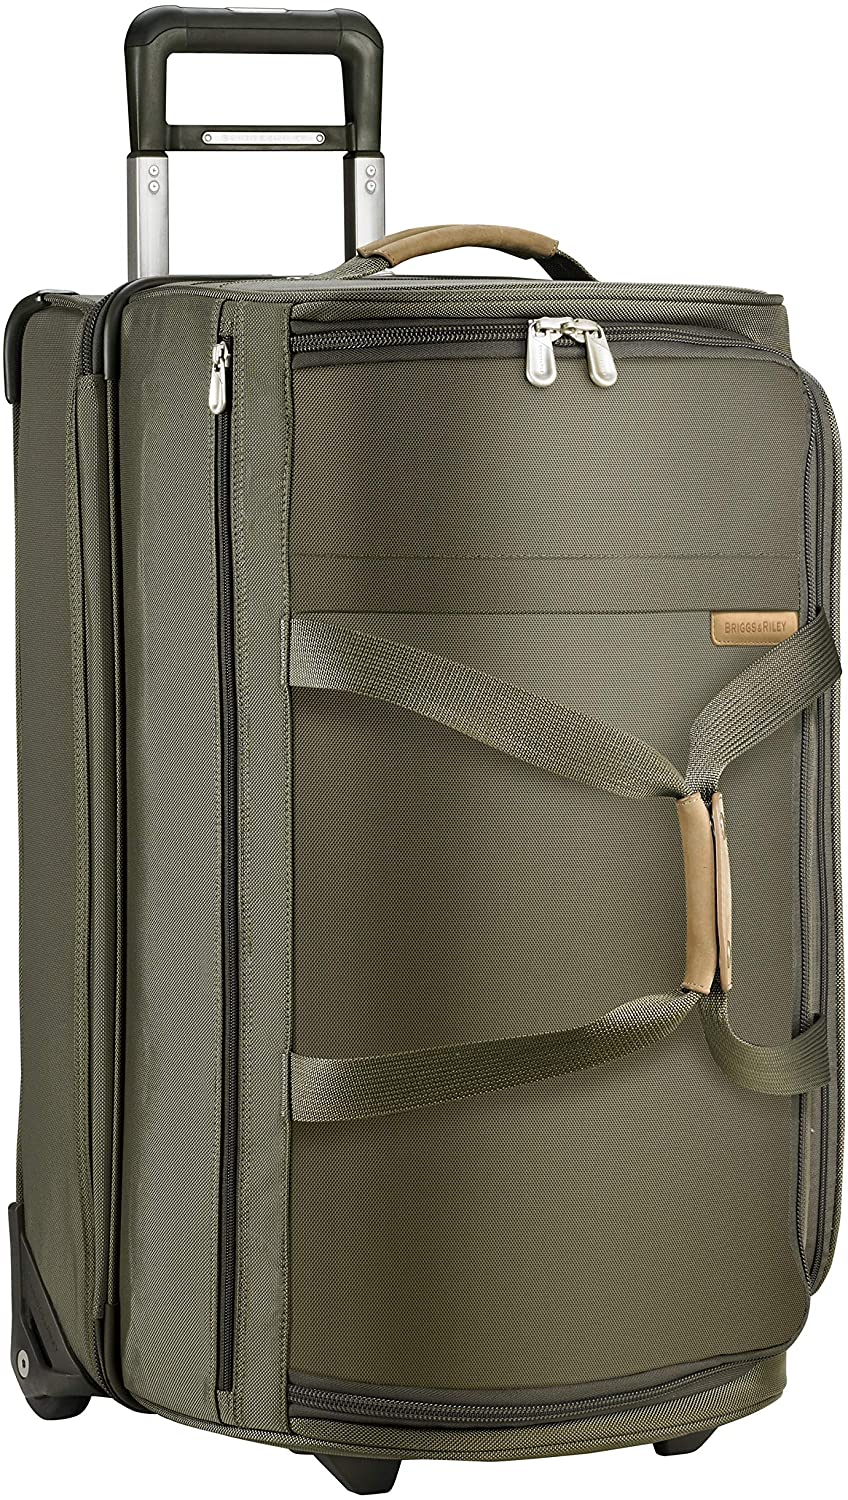 27-inch Briggs & Riley Upright Rolling Duffle Bag in Olive